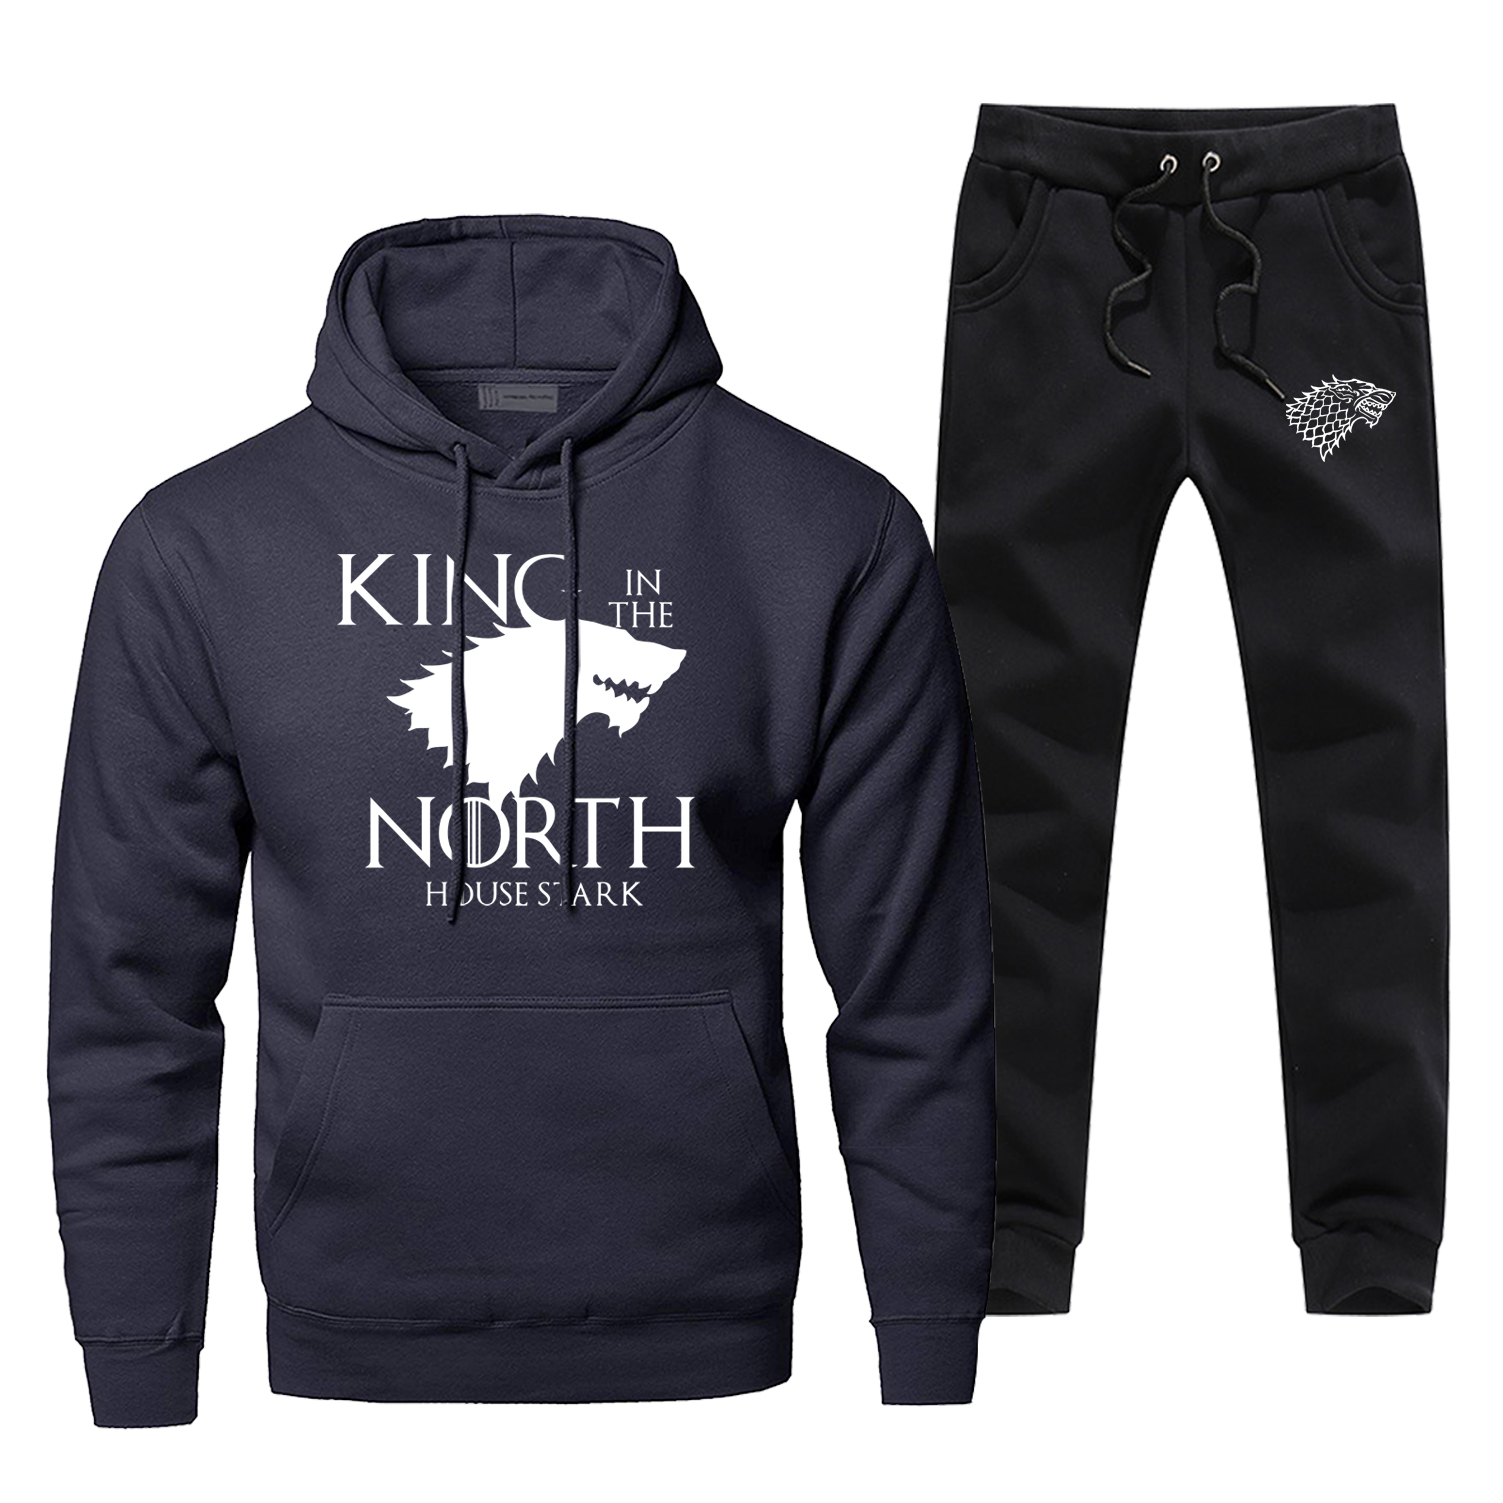 Game Of Thrones Mens Hoodies Sets Two Piece Pant Hoodie King In The North House Starks  Streetwear Sportswear Wolf Sweatshirts